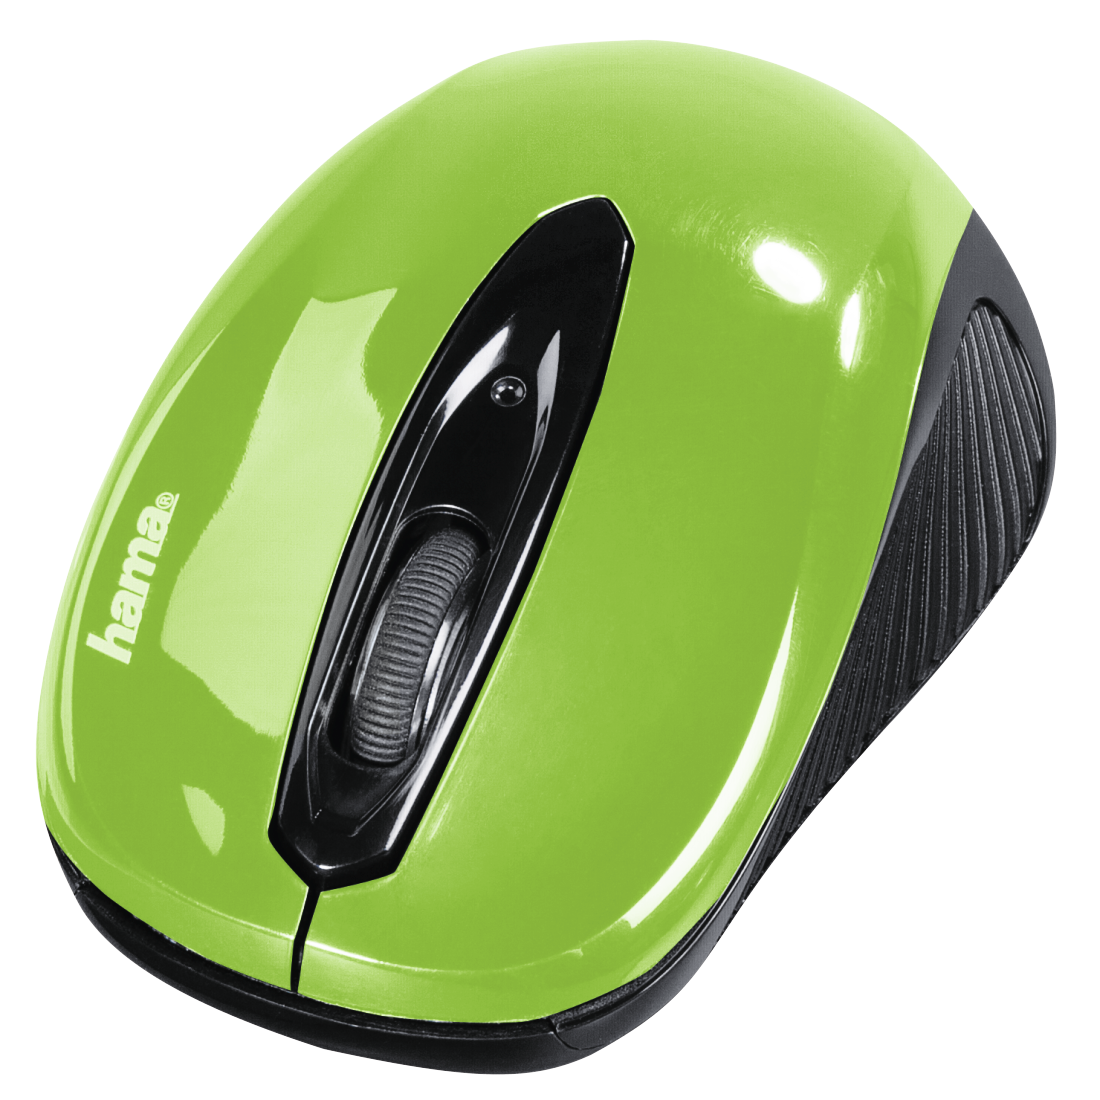 HAMA AM-1000 Optical Mouse Drivers Windows 7